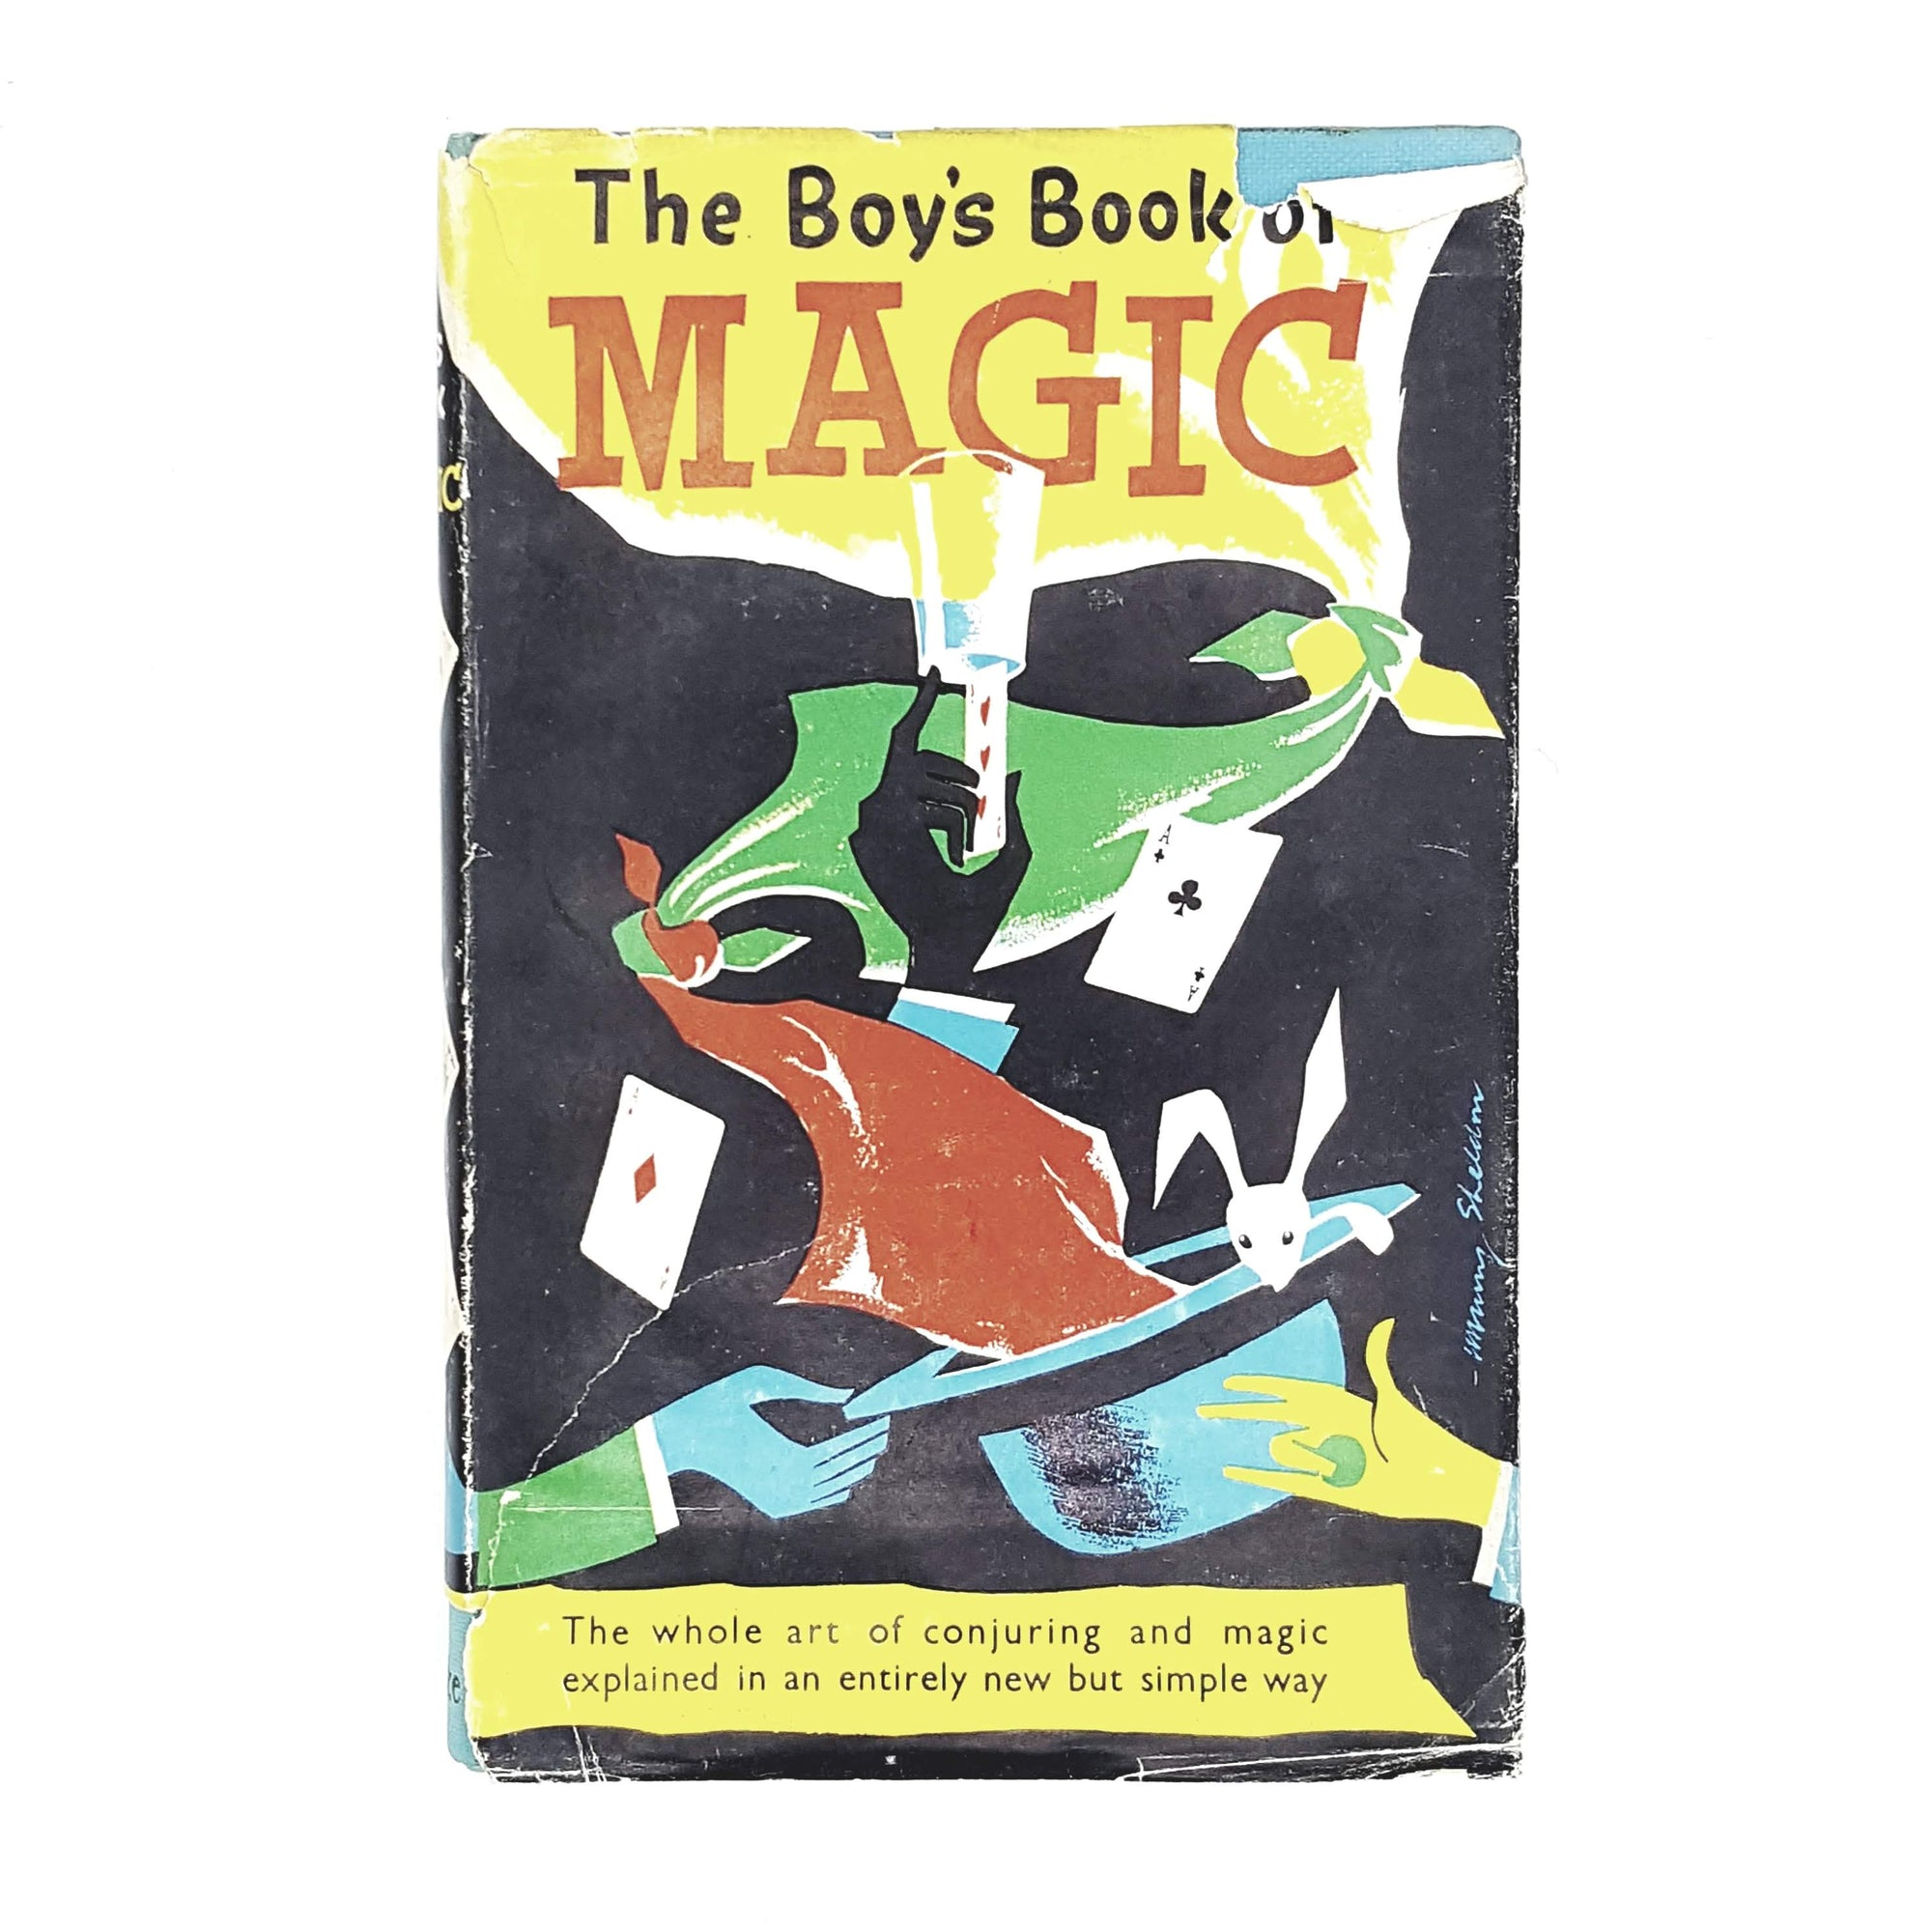 The Boy's Book of Magic